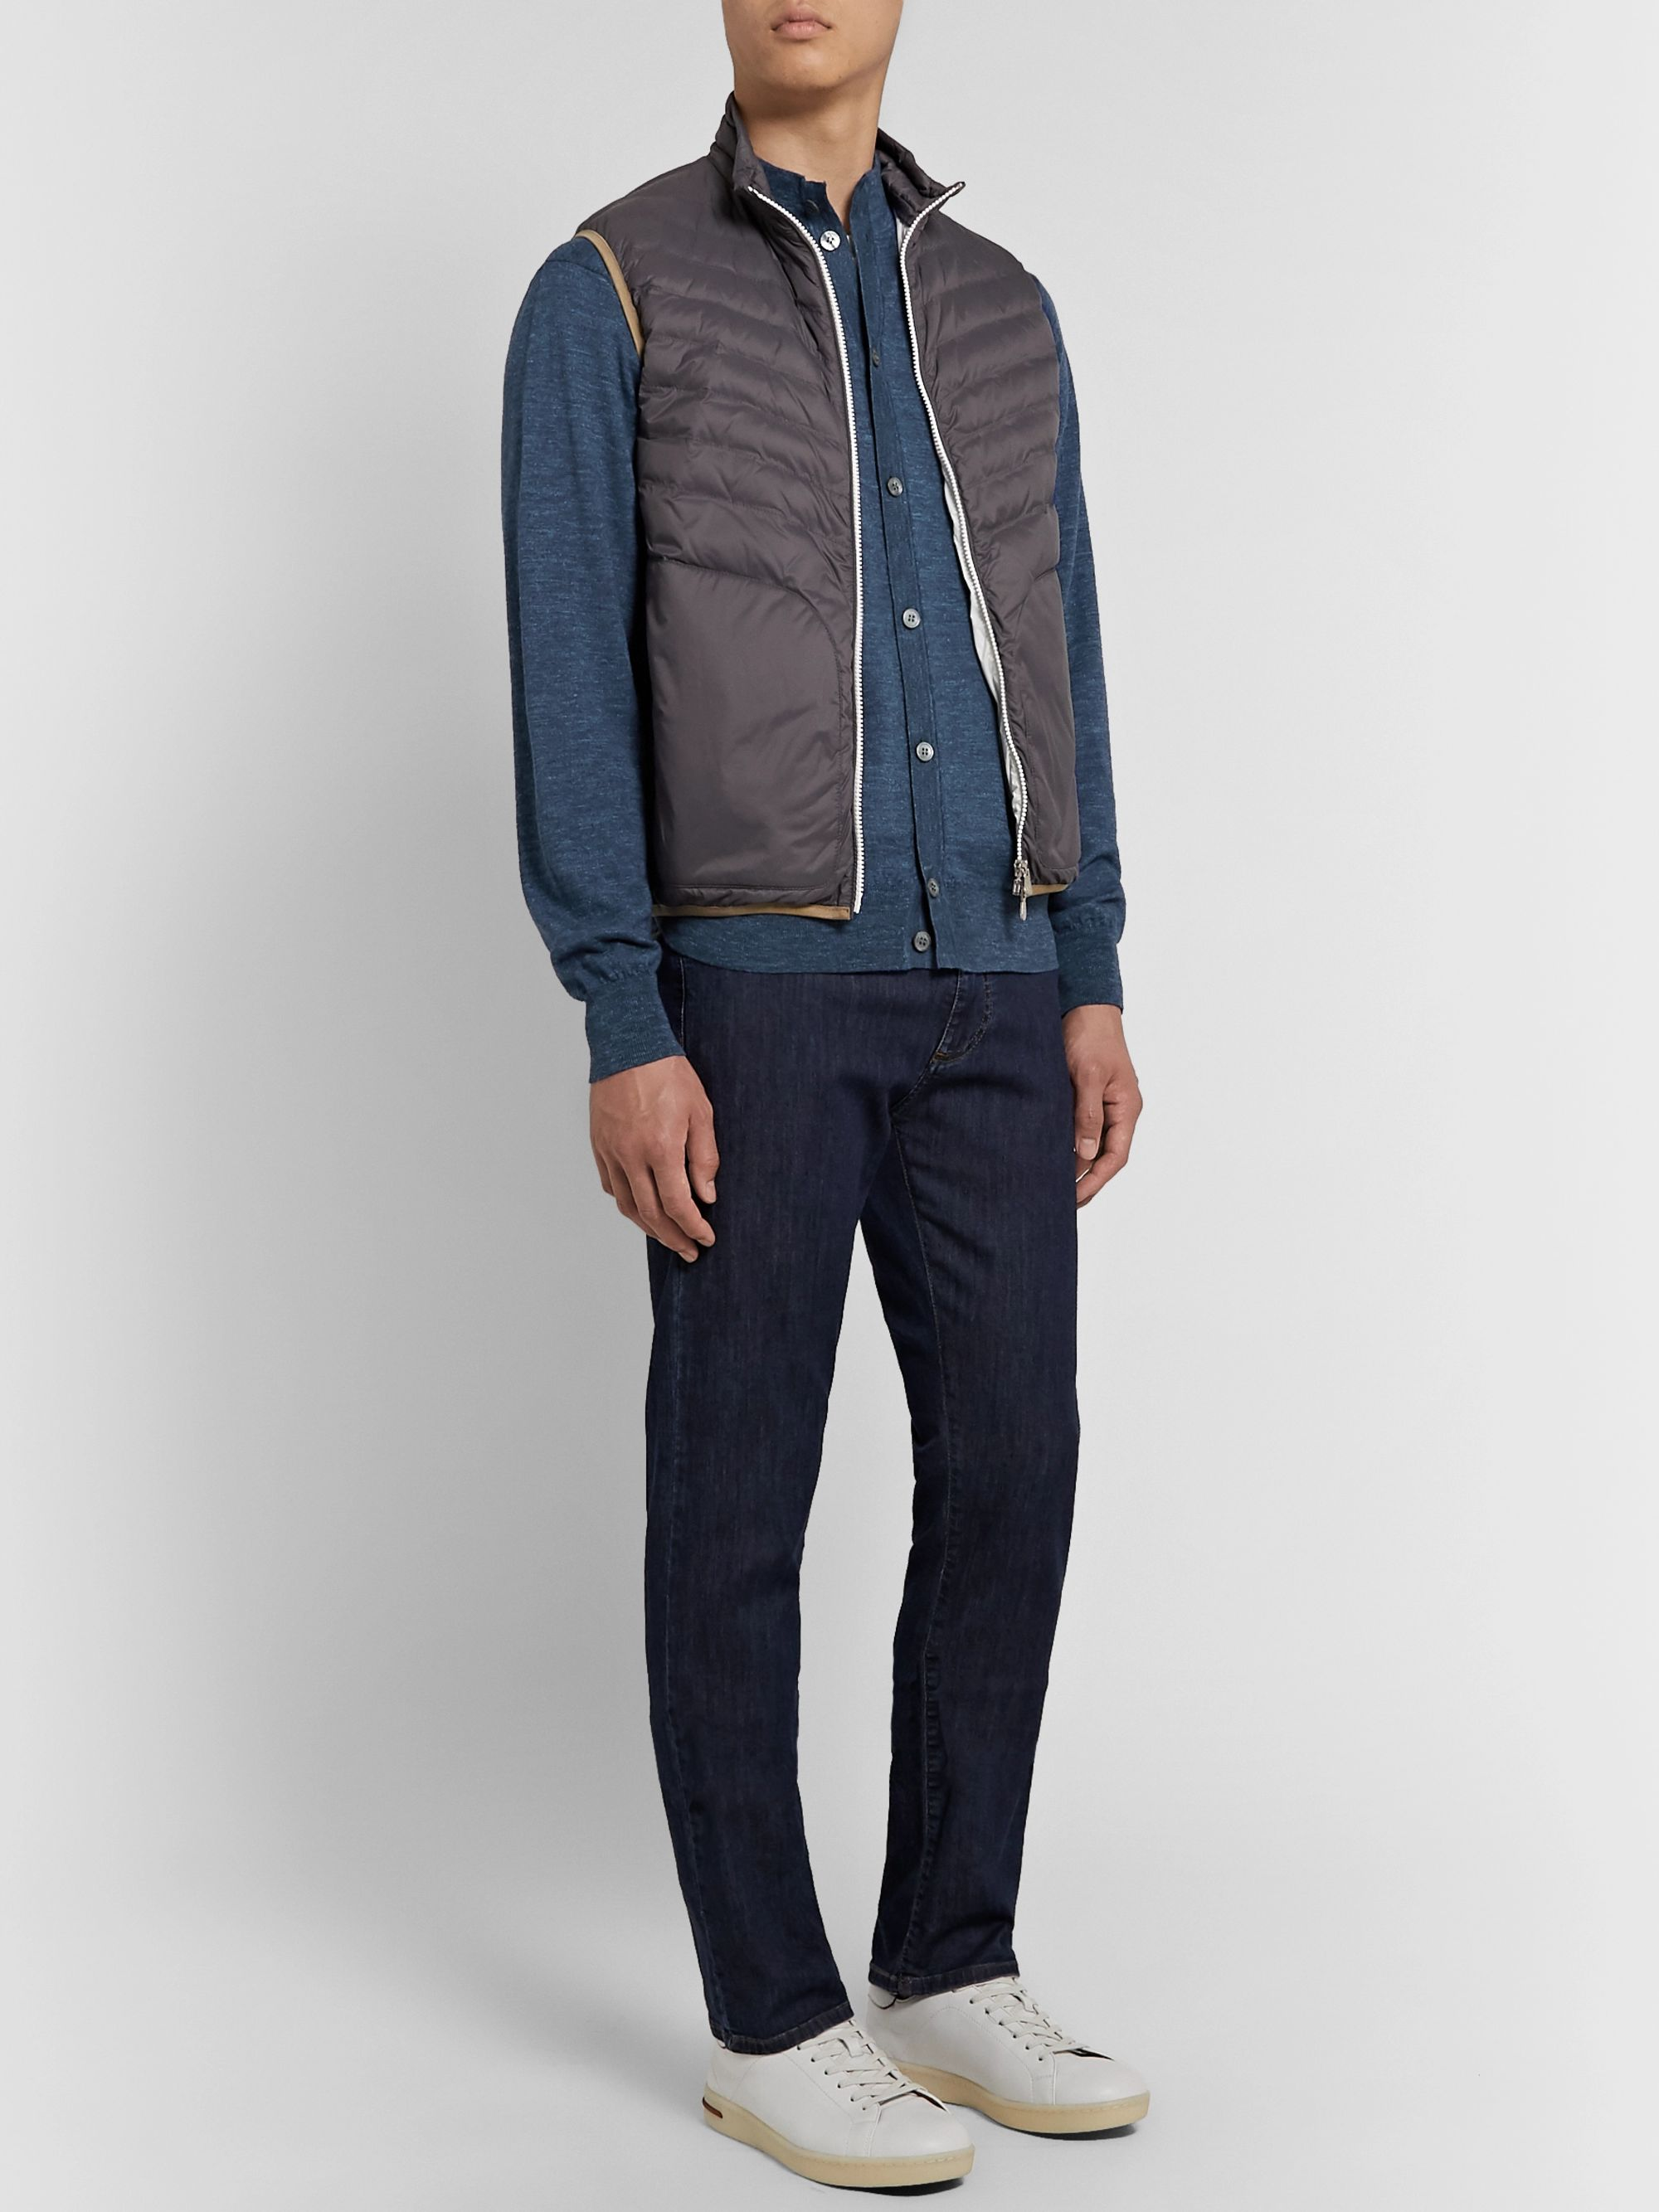 Peter Millar Giardini Mélange Wool, Silk and Linen-Blend Cardigan